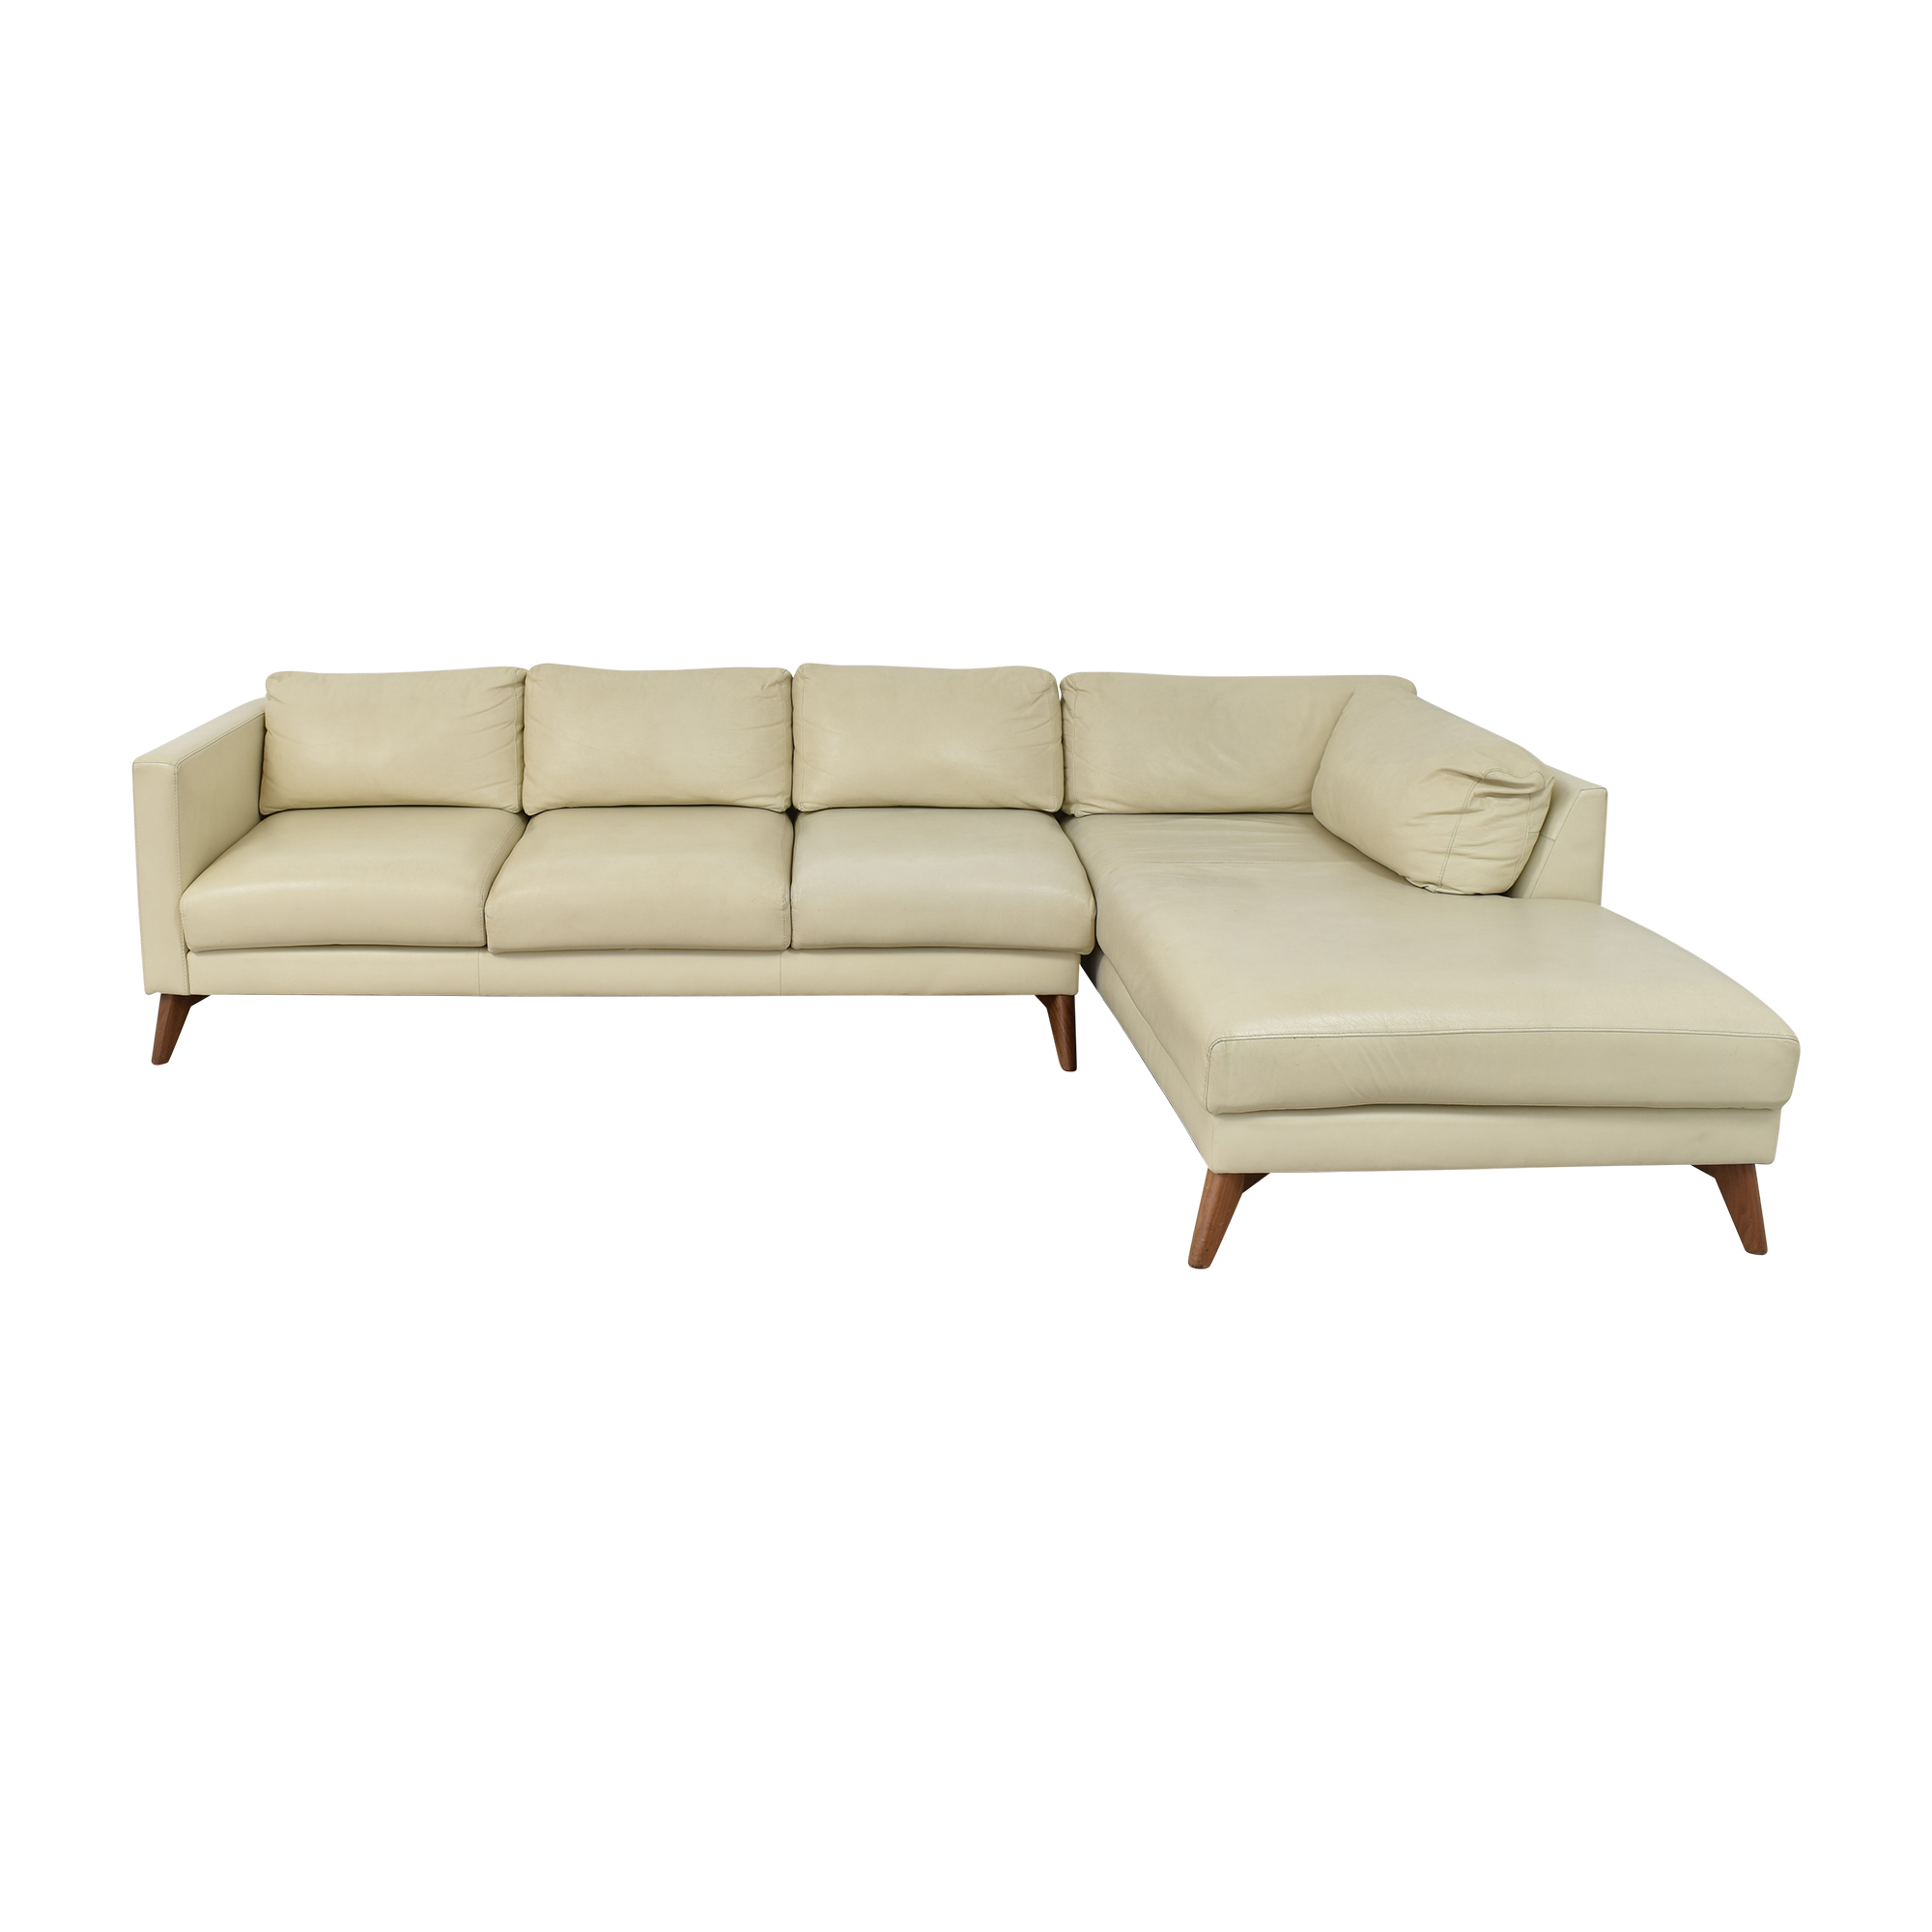 Elite Leather Company Elite Leather Company Burbank Chaise Sectional Sofa pa